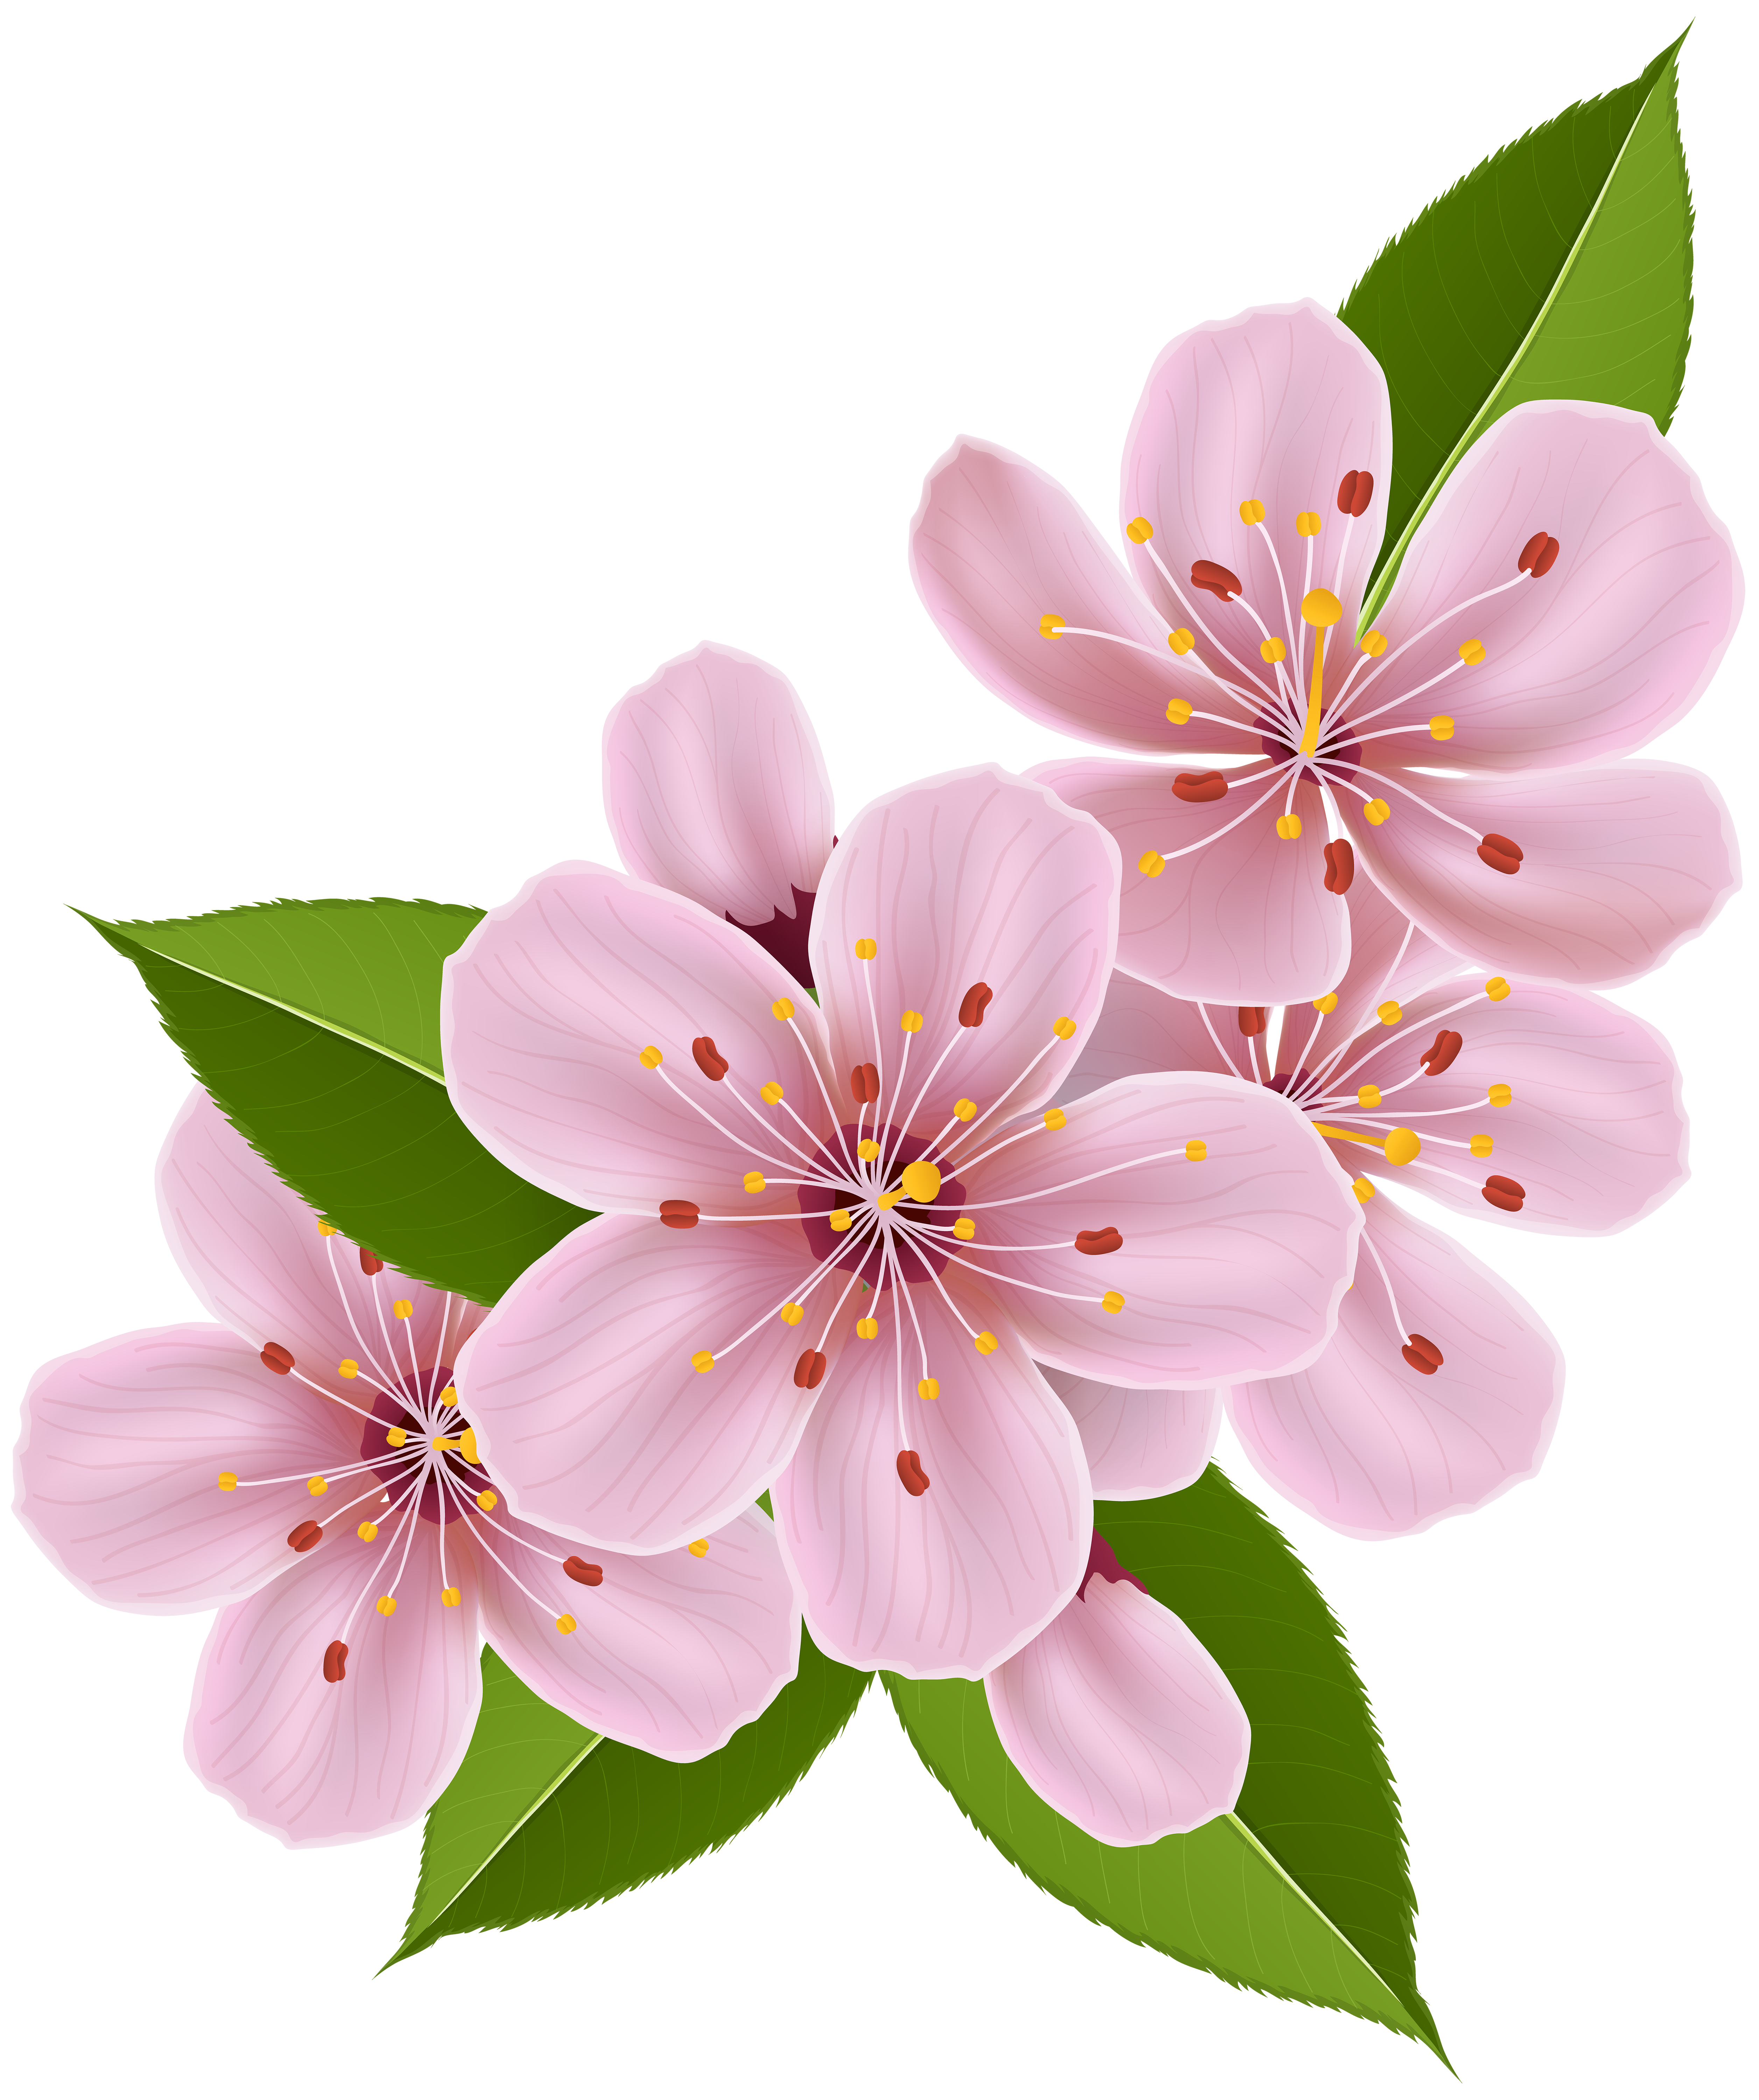 Spring flower clipart free vector black and white download Spring Cherry Blossom Flowers PNG Clip Art Image   Gallery ... vector black and white download